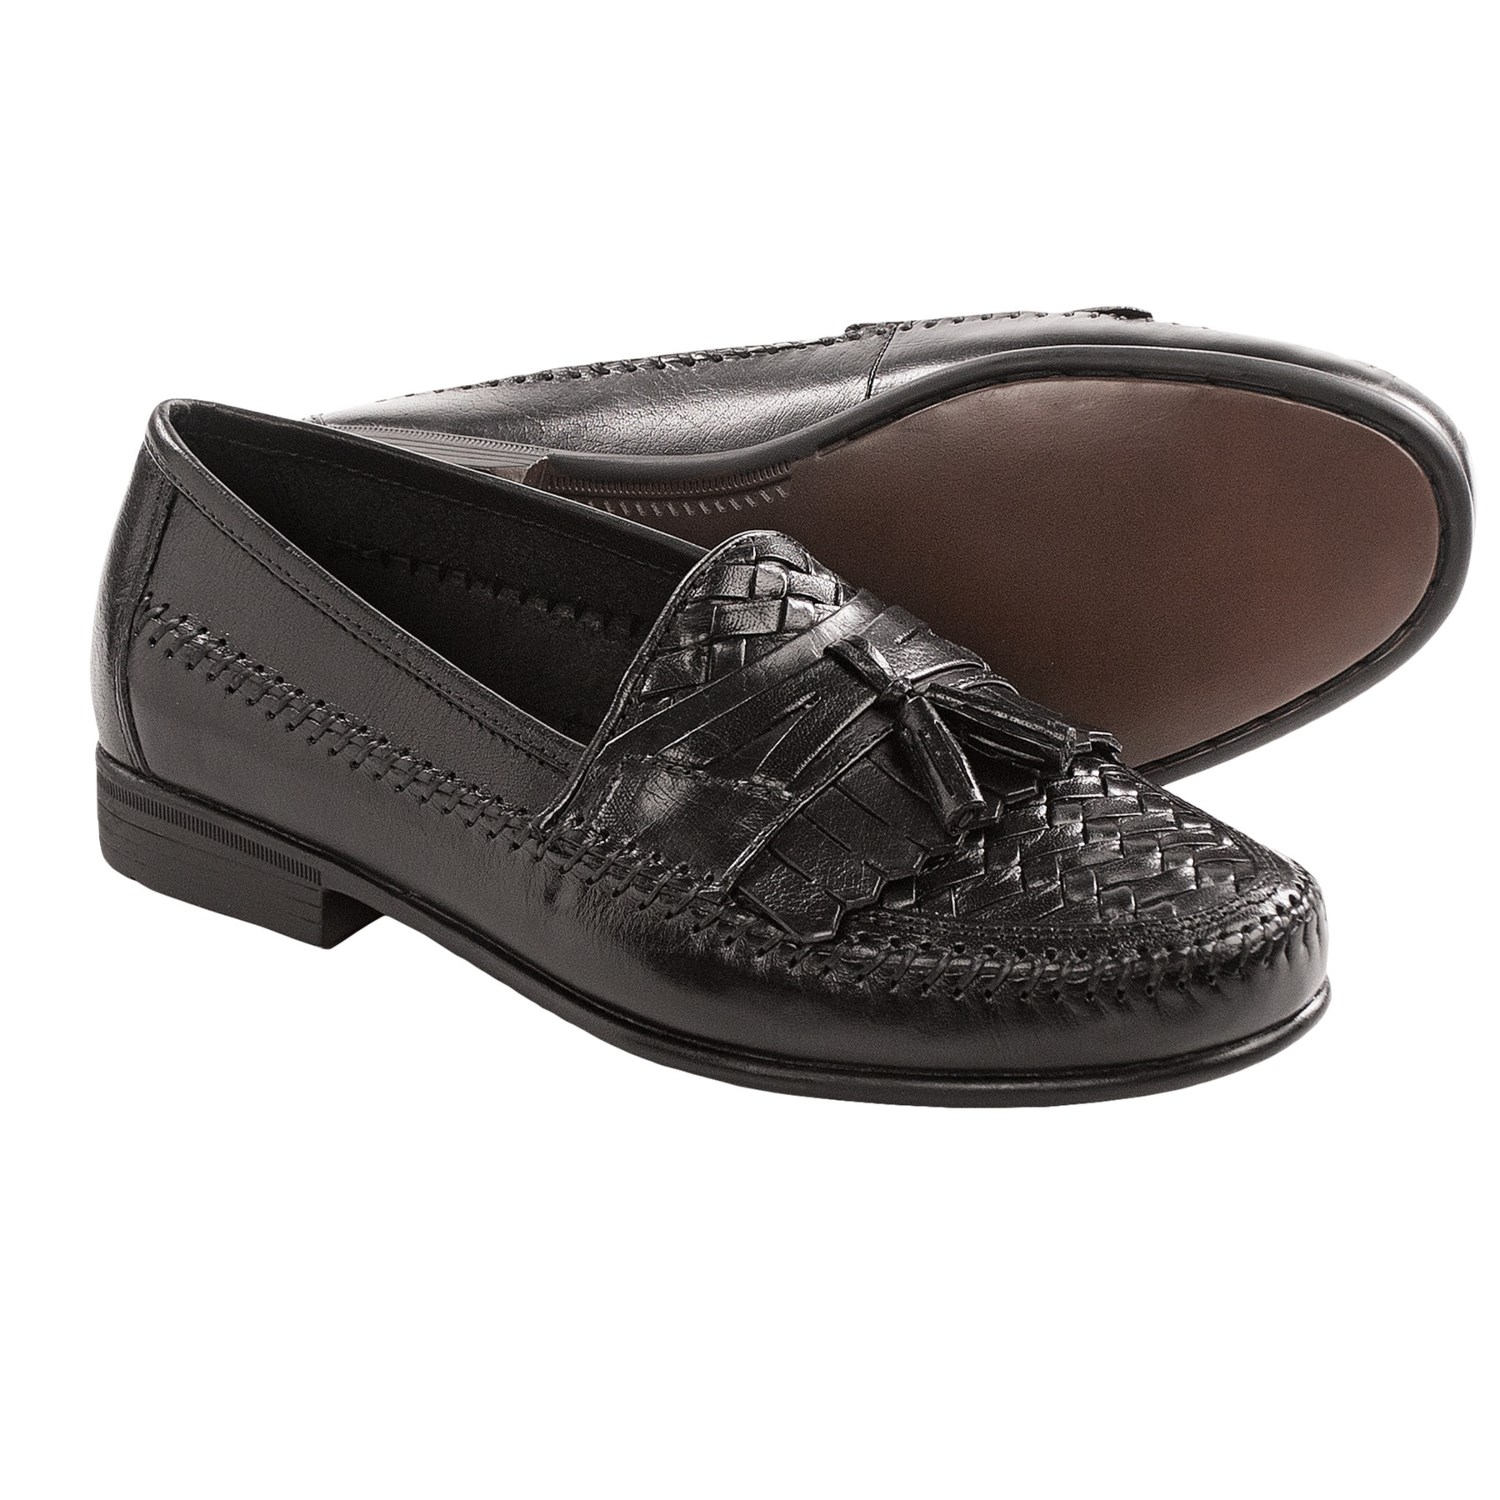 Hush puppies san remo iii loafers leather slip ons for men in